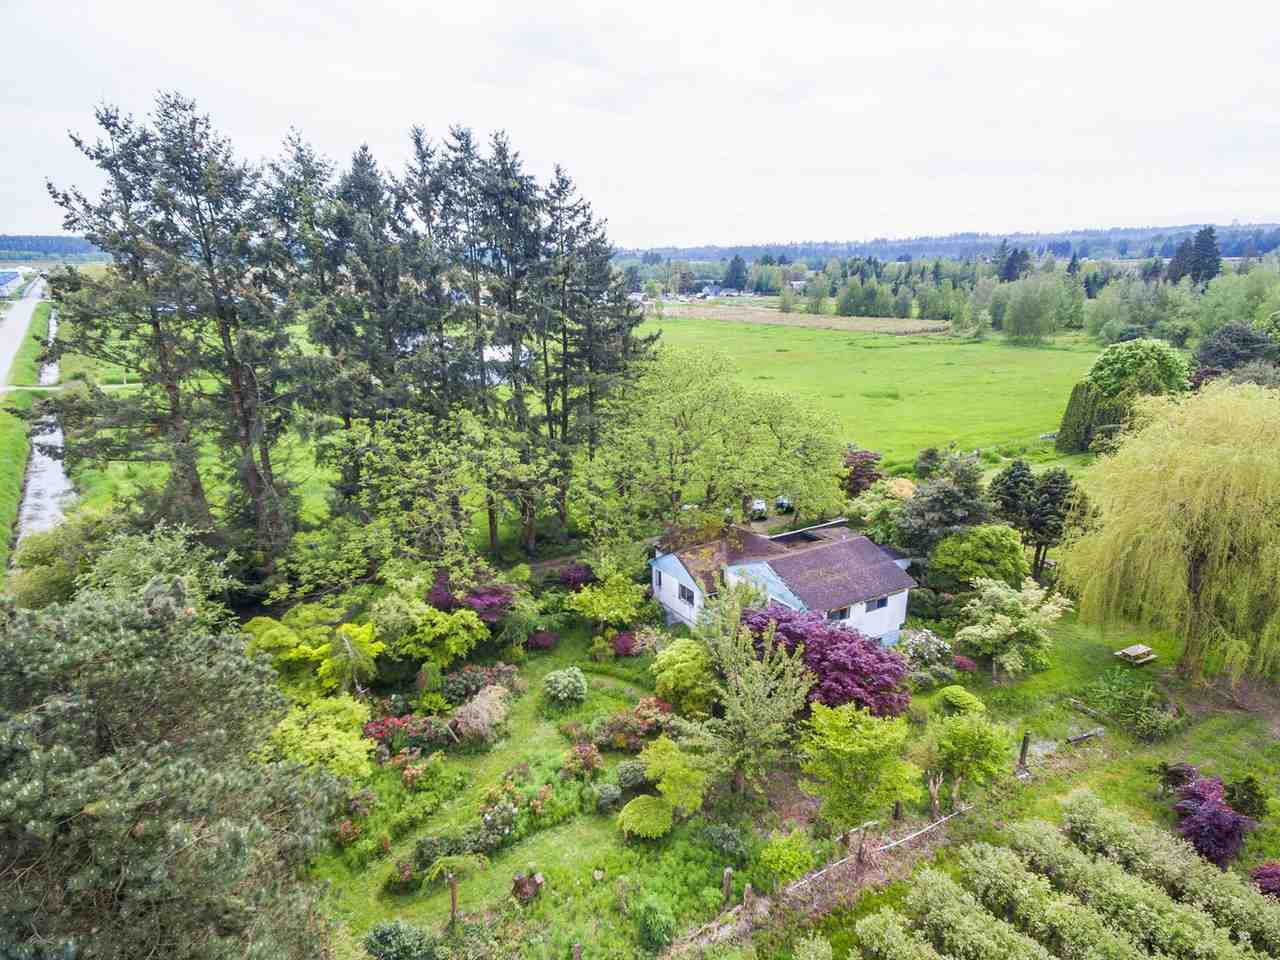 Beautiful, peaceful 4.8 acre country estate property in Pitt Meadows. Design & build your own large estate dream home (potentially up to 10,000 SF). Gated property has a private garden of flowering cherry blossom trees, mature walnut trees, pine trees & graceful weeping willow tree; ornamental & flowering plants such as Japanese maples, rhododendrons, azaleas & peonies. 2.5 acres of mature blueberry bushes on the property can generate revenue. Situated by a quiet road. View of the surrounding mountains. Conveniently located, 5 to 10 minutes driving distance to schools, shopping & restaurants. Demolish existing old house to create your own private estate on this beautiful scenic countryside property.